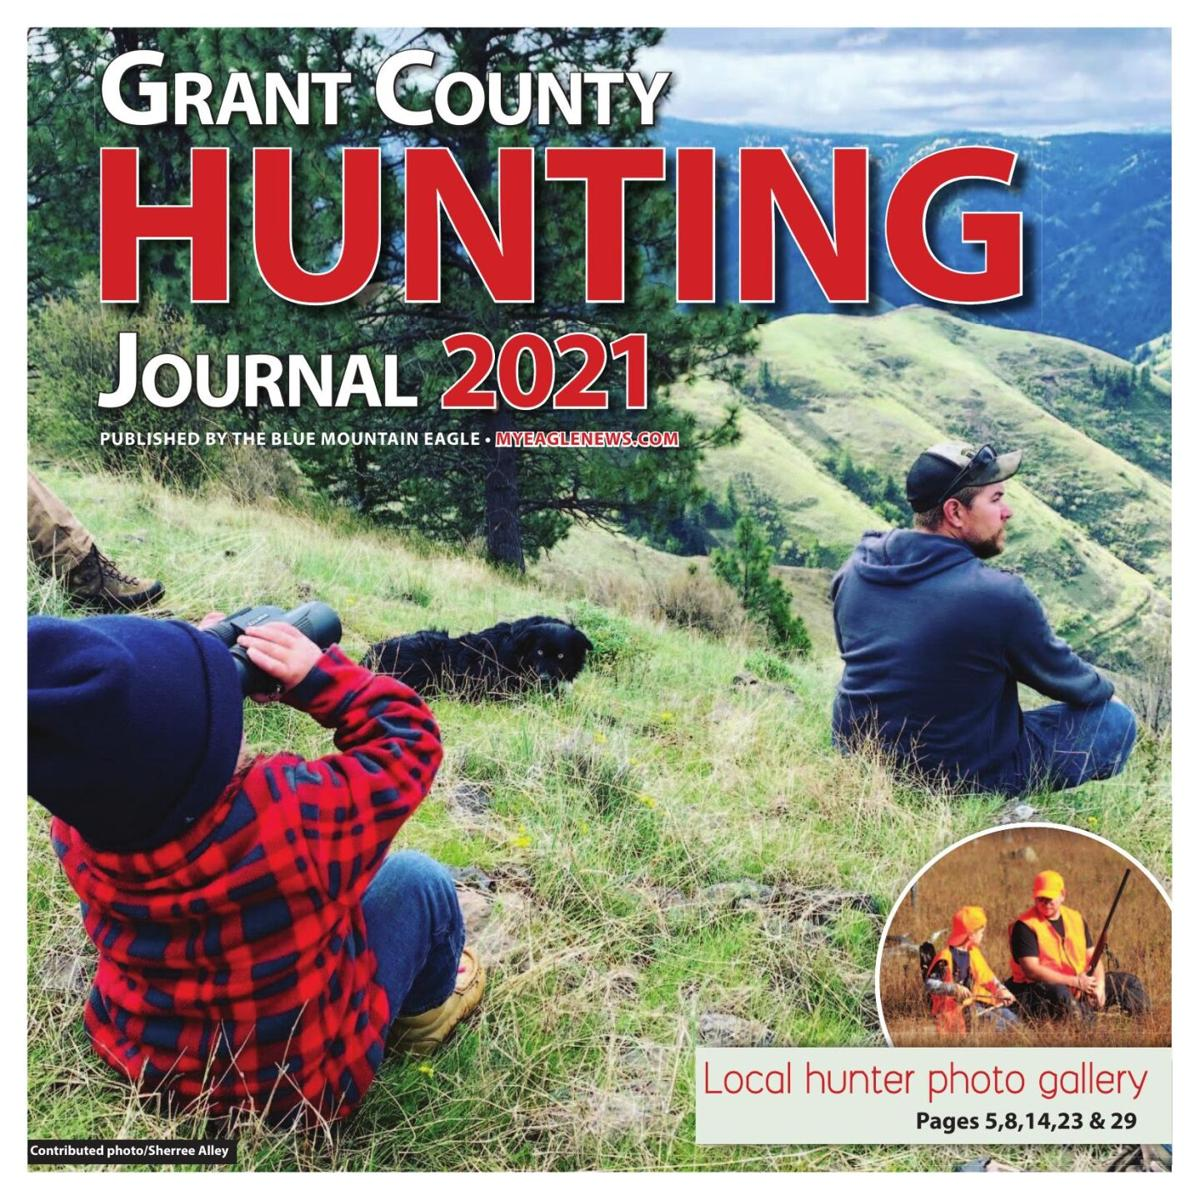 Grant County Hunting Journal 2021